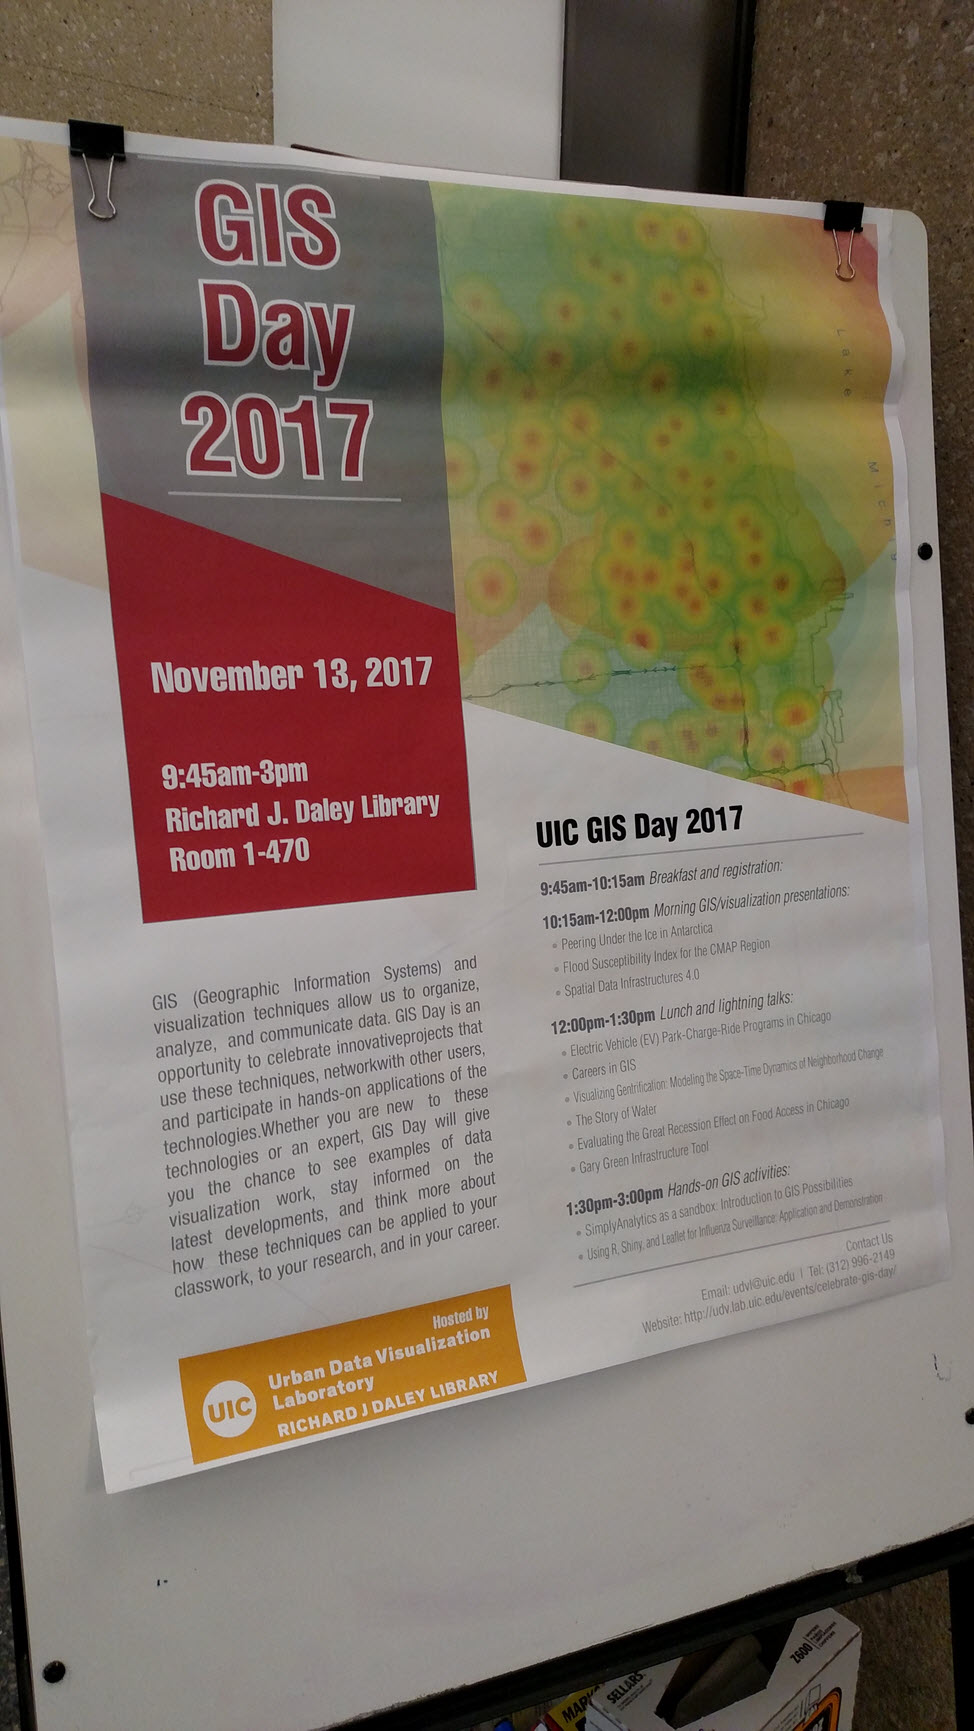 University of Illinois at Chicago GIS Day 2017